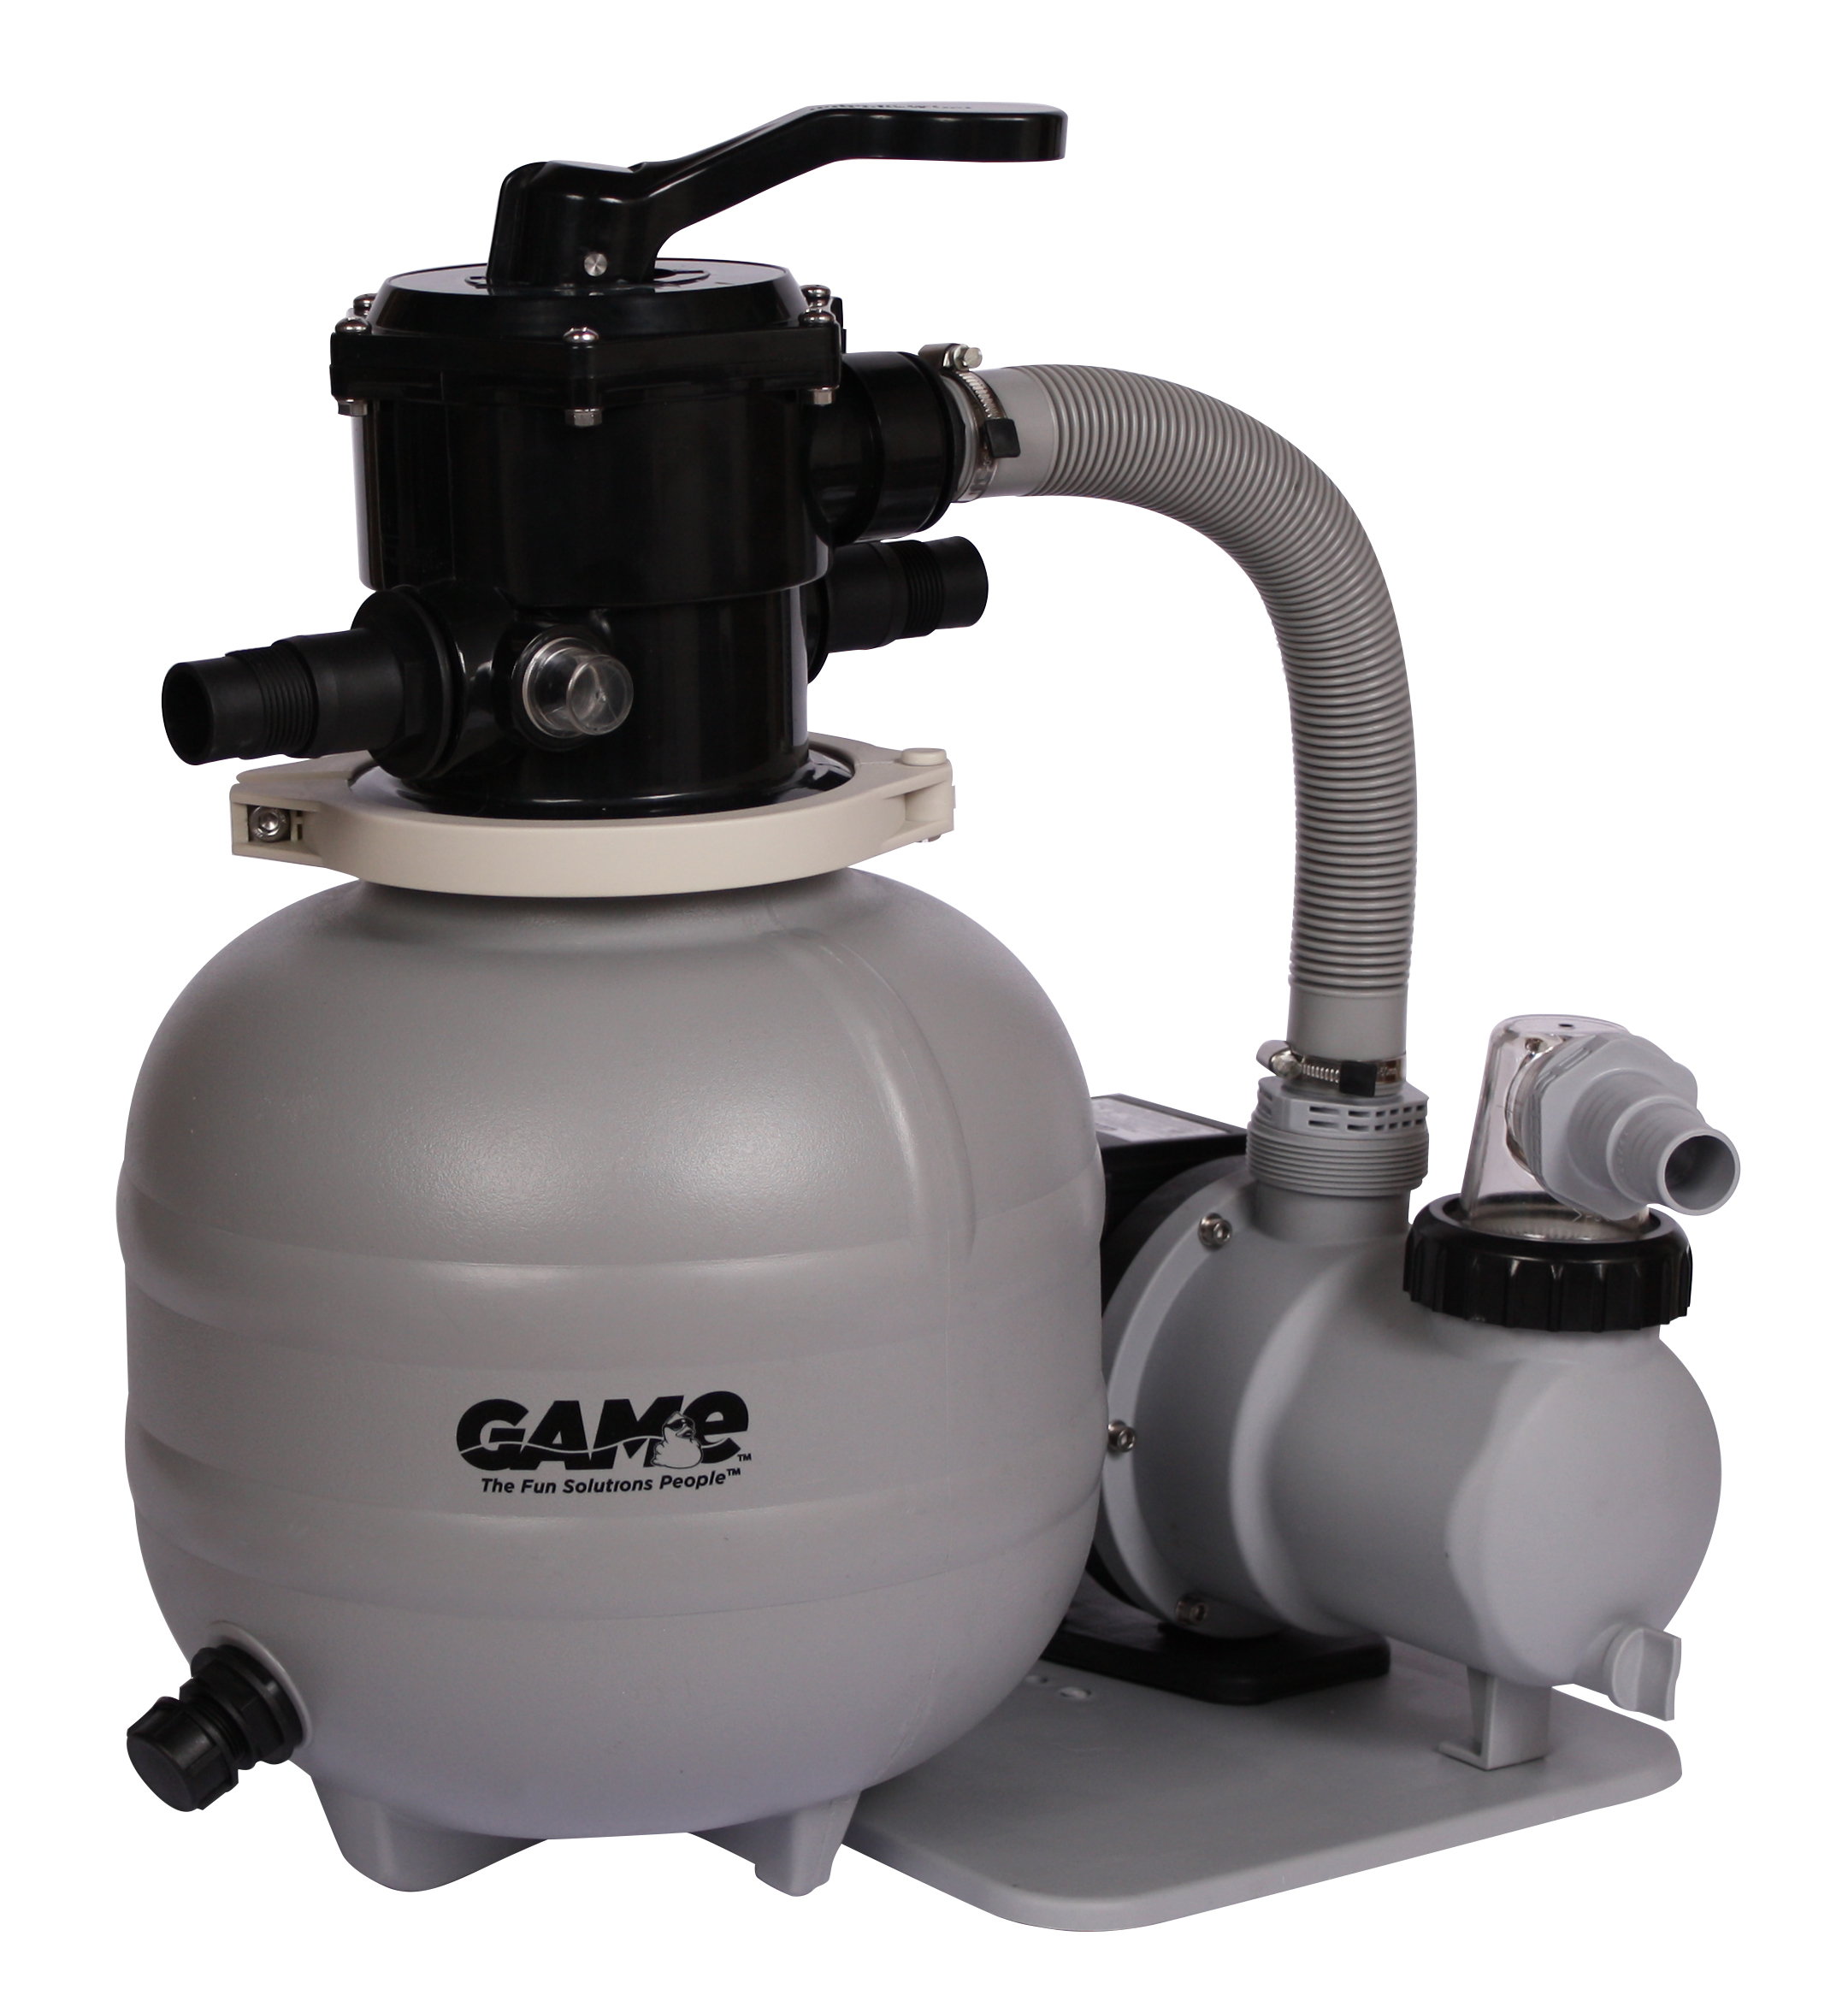 sandpro 25 high flow pool pump and filter system for above ground pools ebay. Black Bedroom Furniture Sets. Home Design Ideas